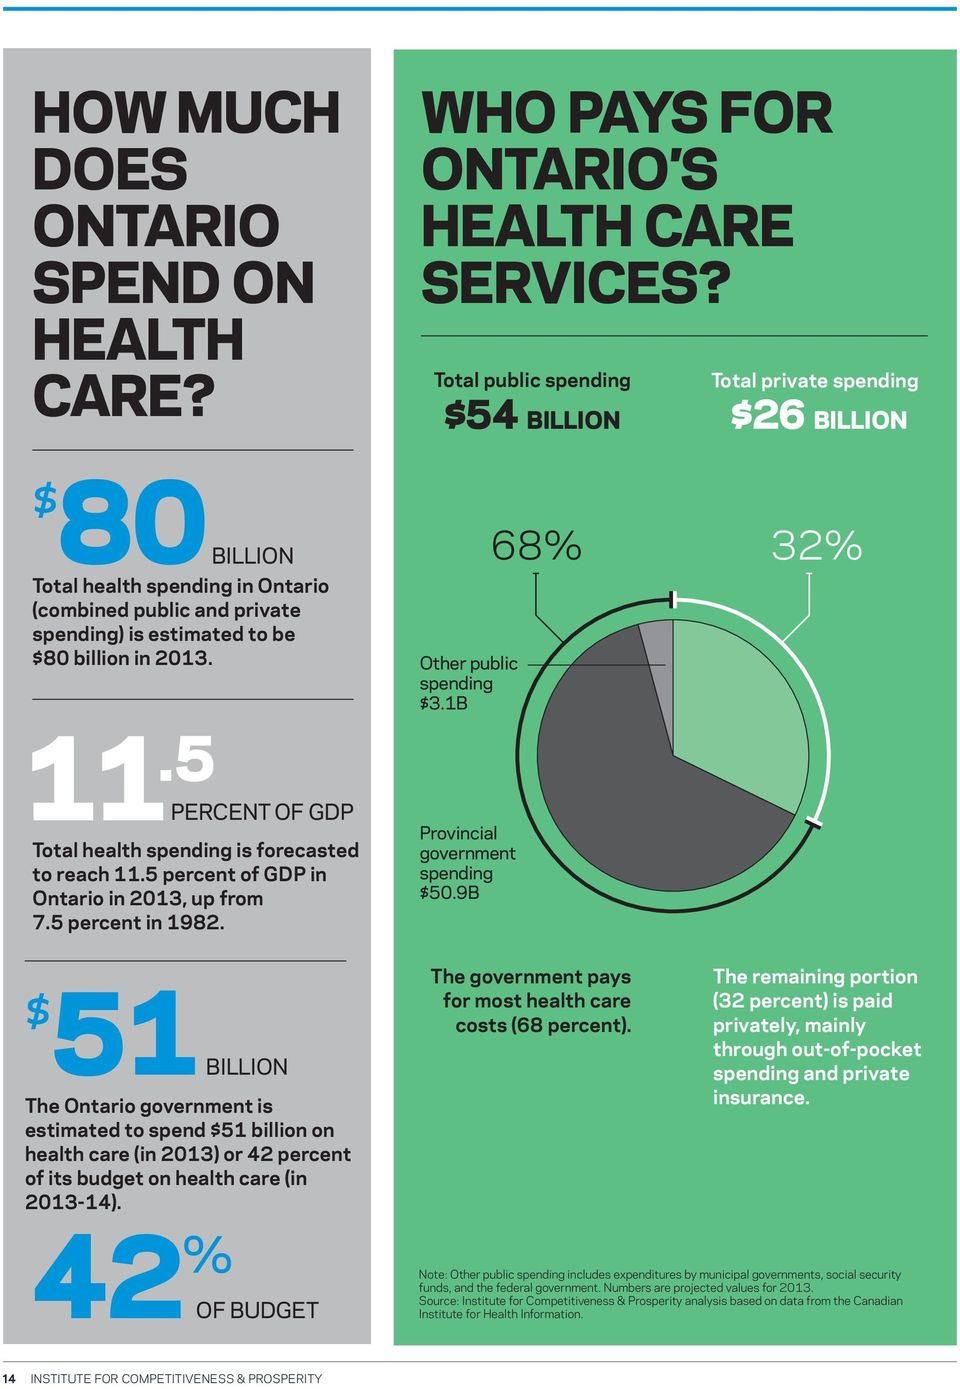 Other public spending $3.1B 68% 32% 11.5 PERCENT OF GDP Total health spending is forecasted to reach 11.5 percent of GDP in Ontario in 2013, up from 7.5 percent in 1982.